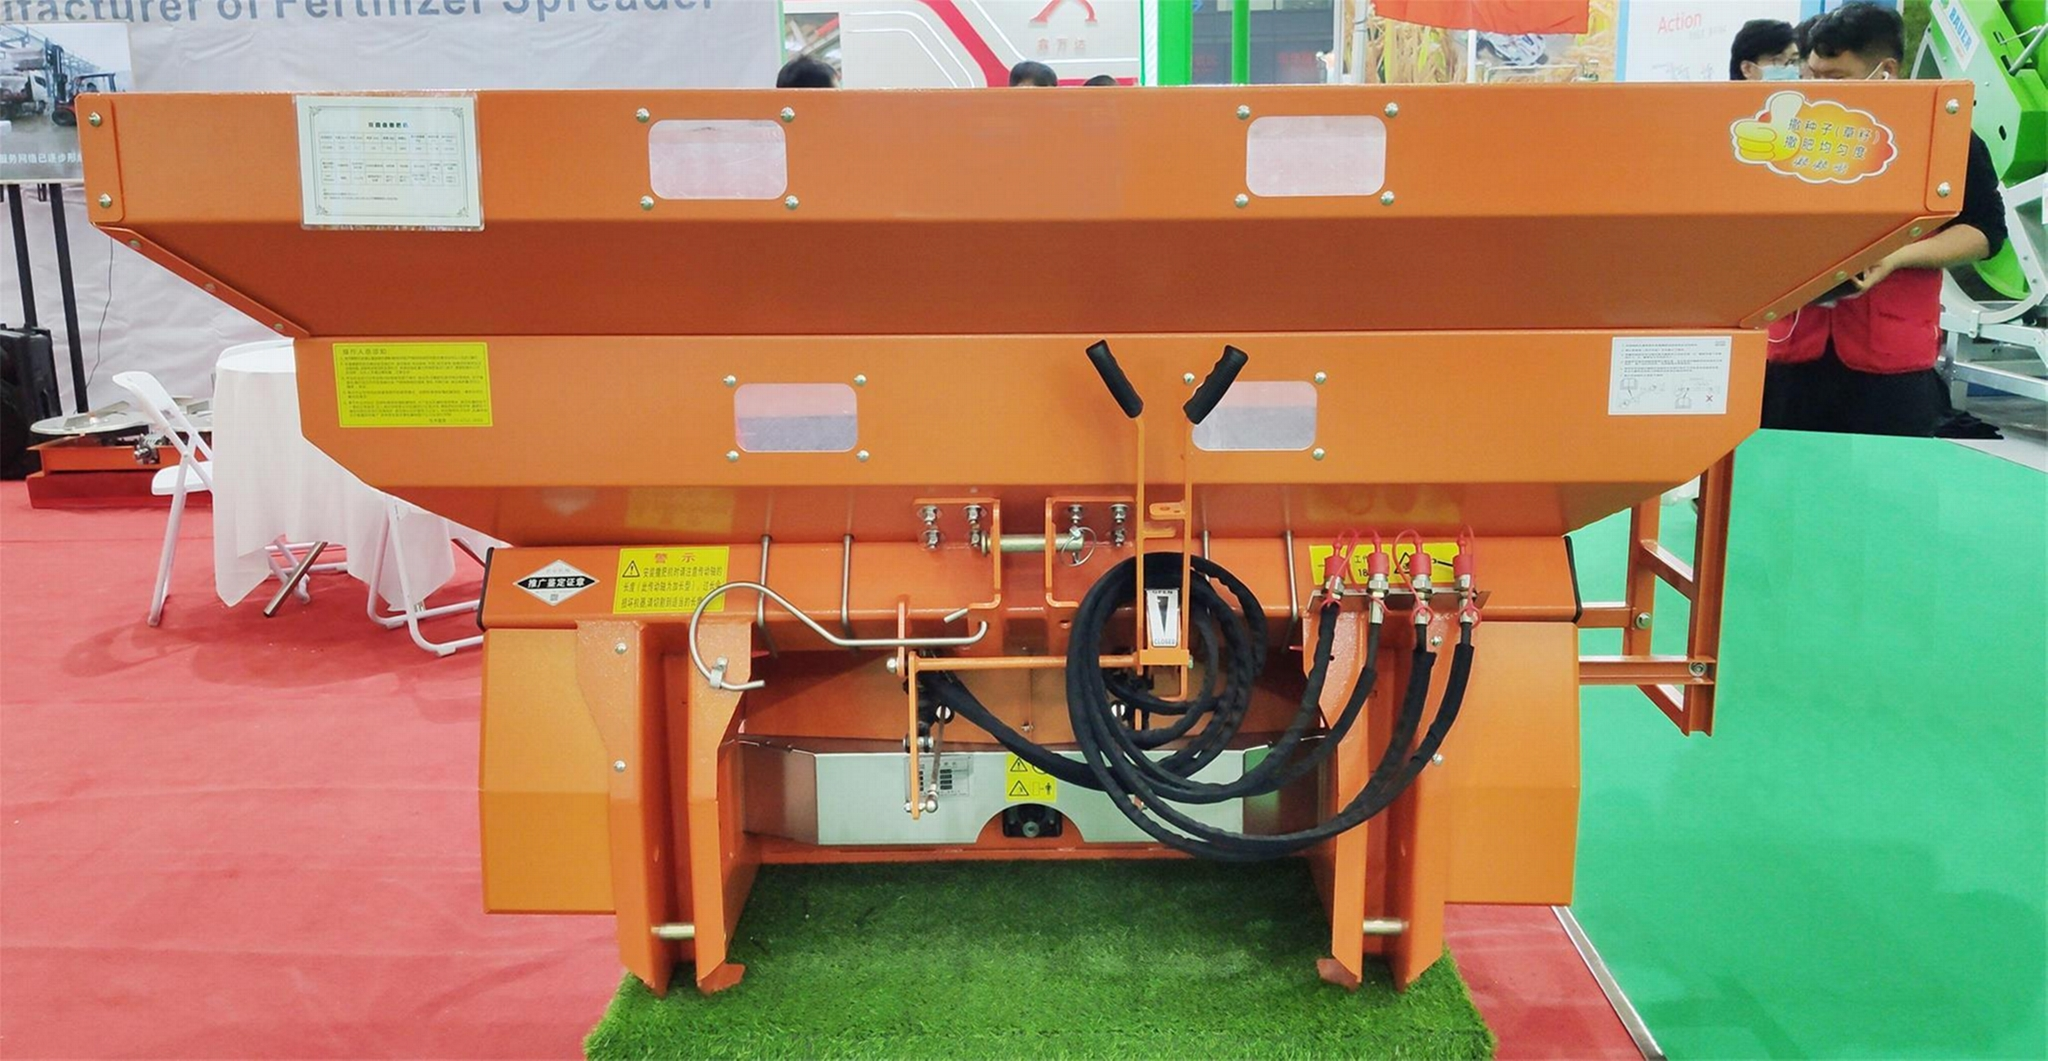 PTO Shaft Drive muck fertilizer spreader